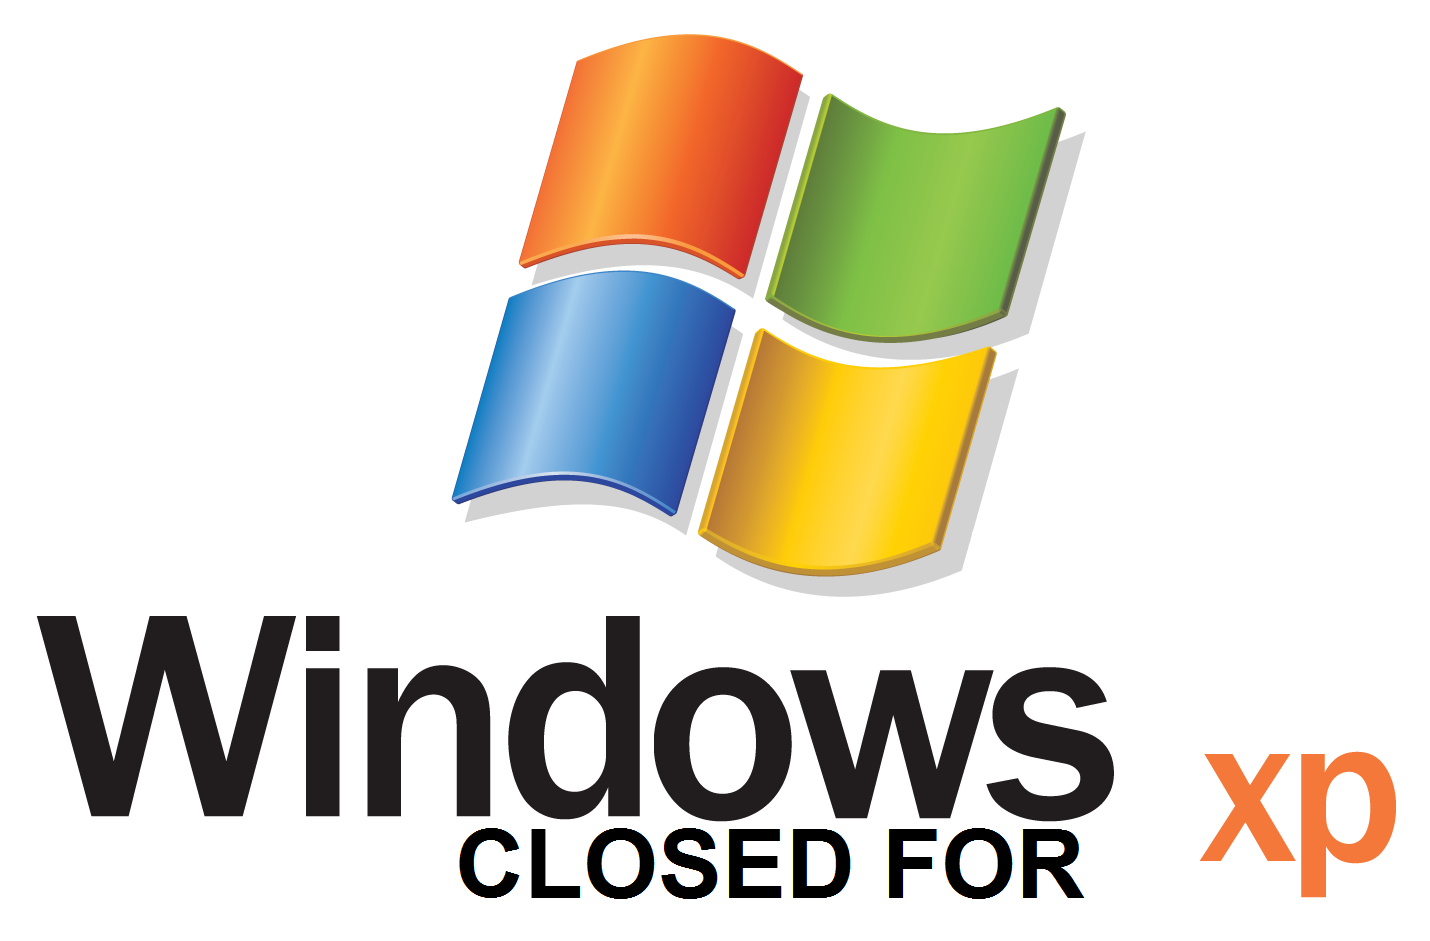 Microsoft ends support and updates for Windows XP